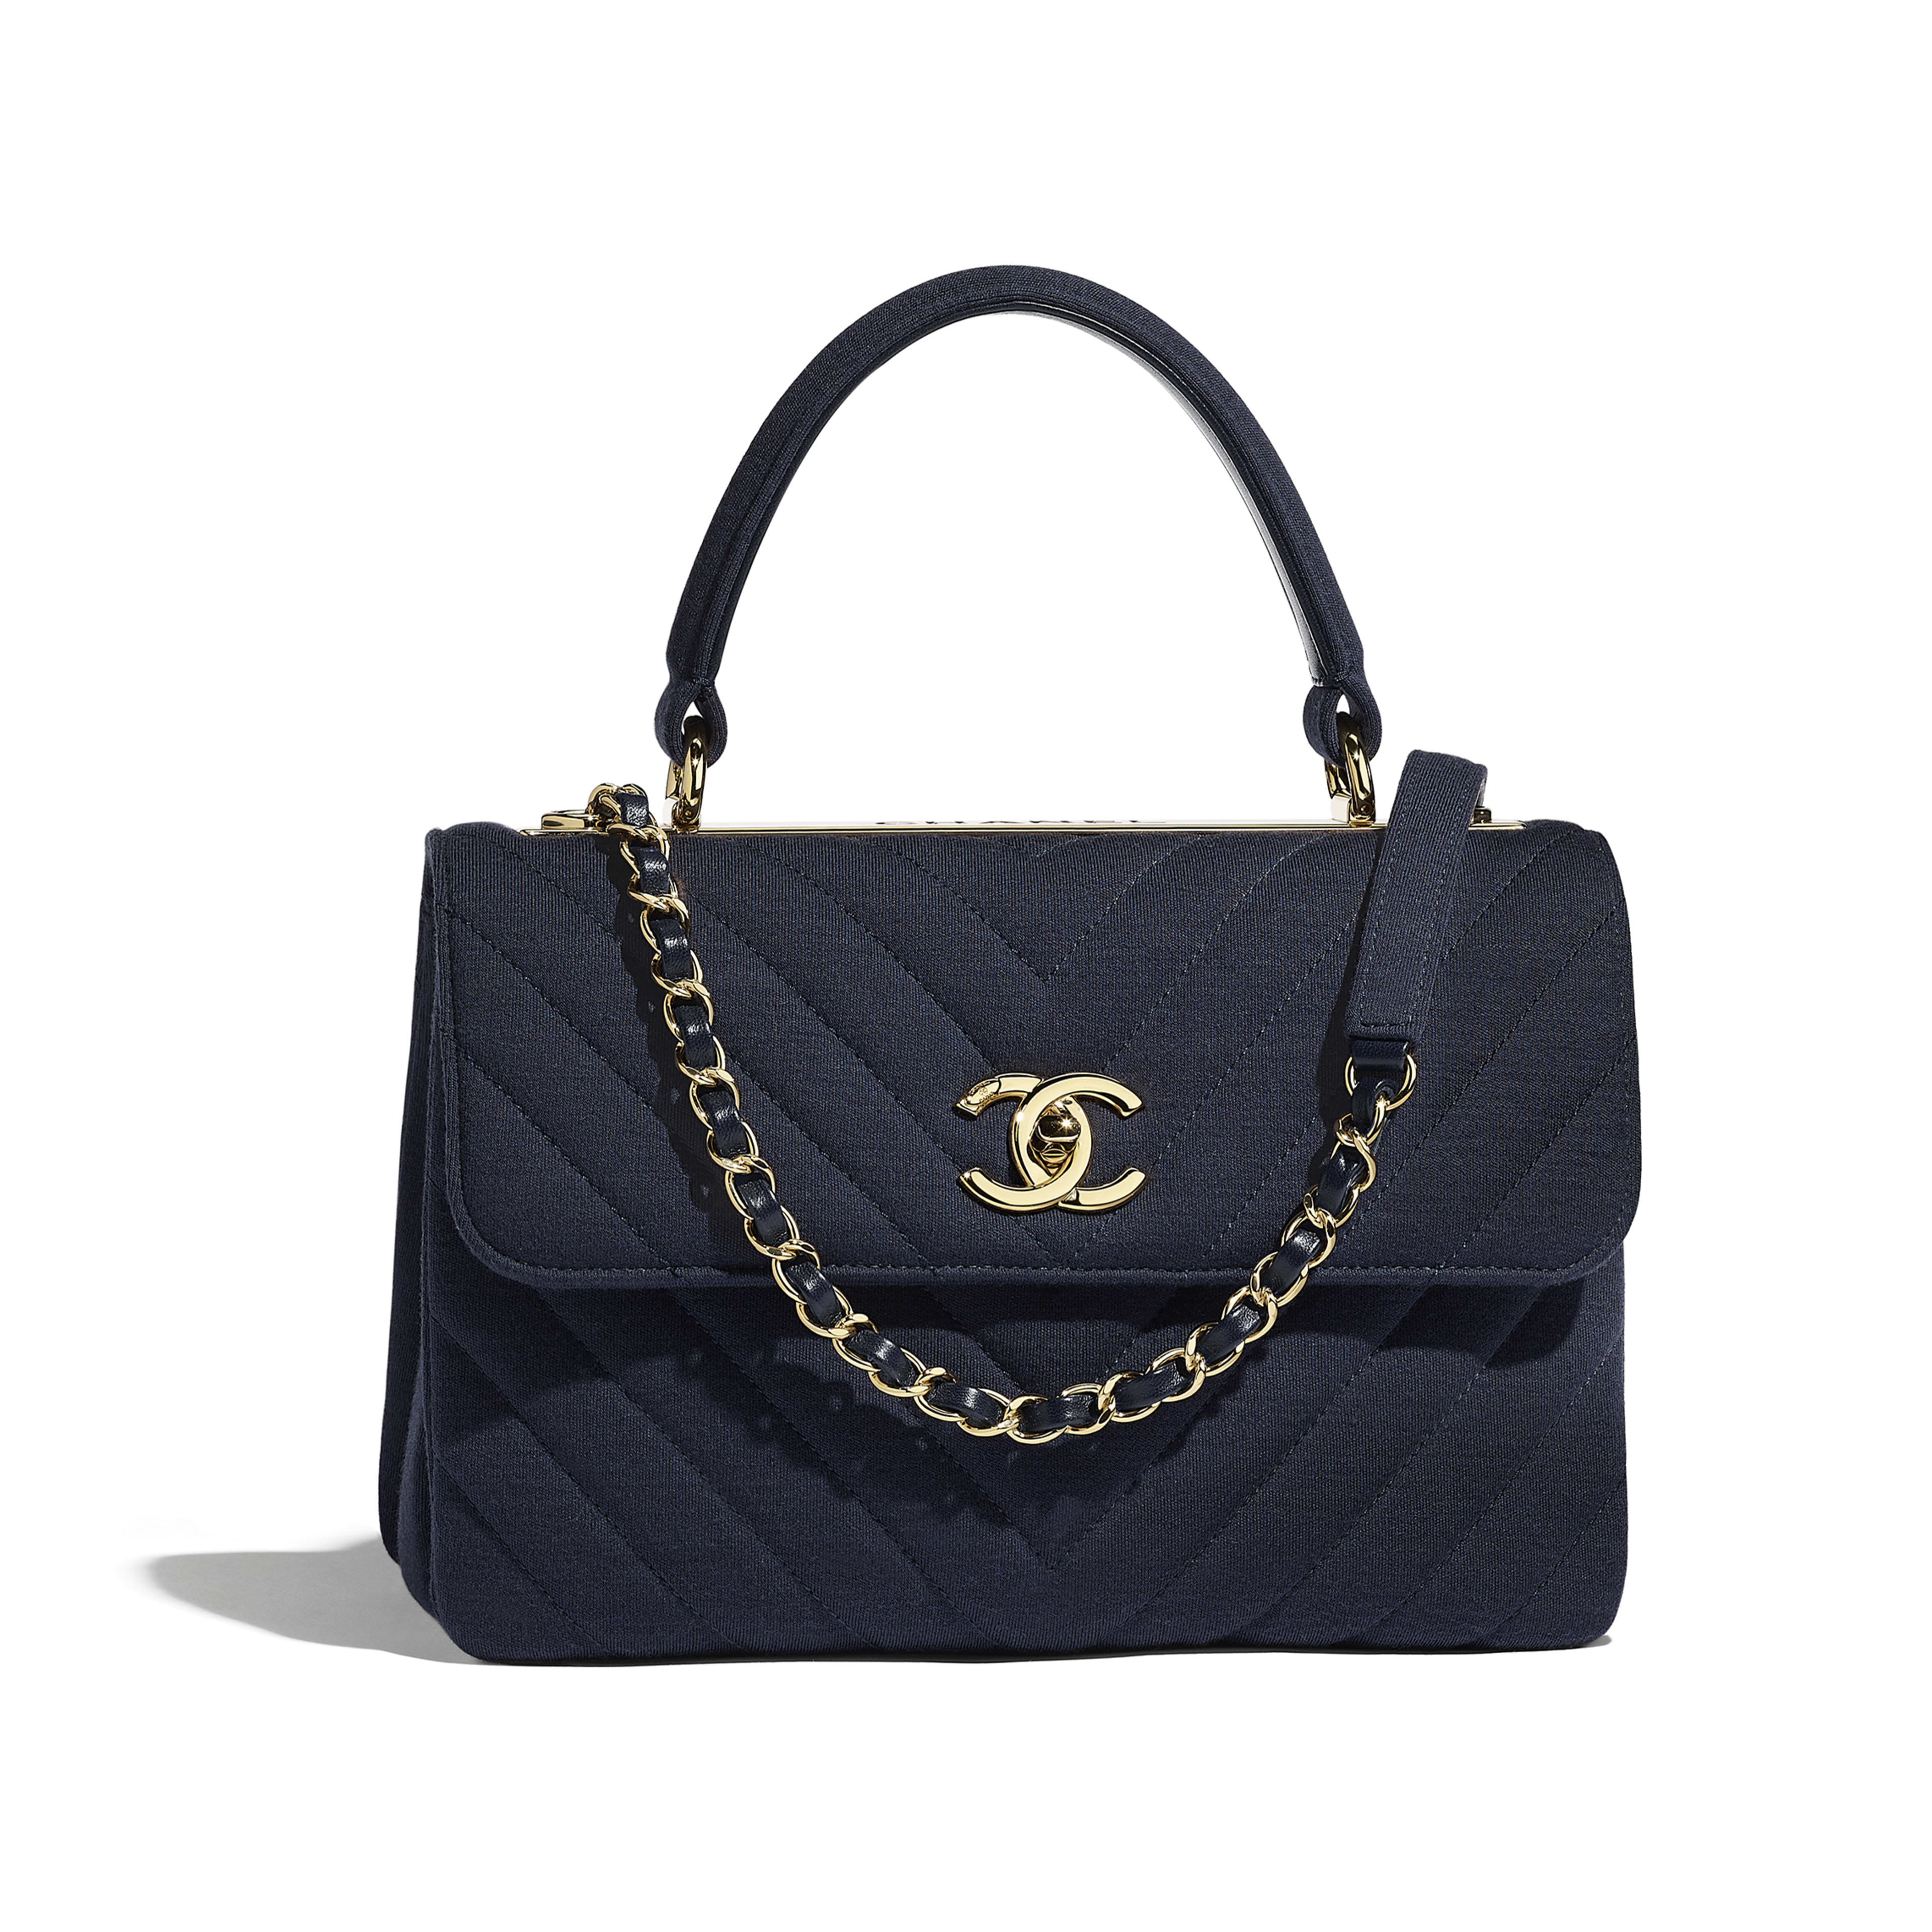 8801b55b8f329 Small Flap Bag with Top Handle - Navy Blue - Jersey   Gold-Tone Metal ...